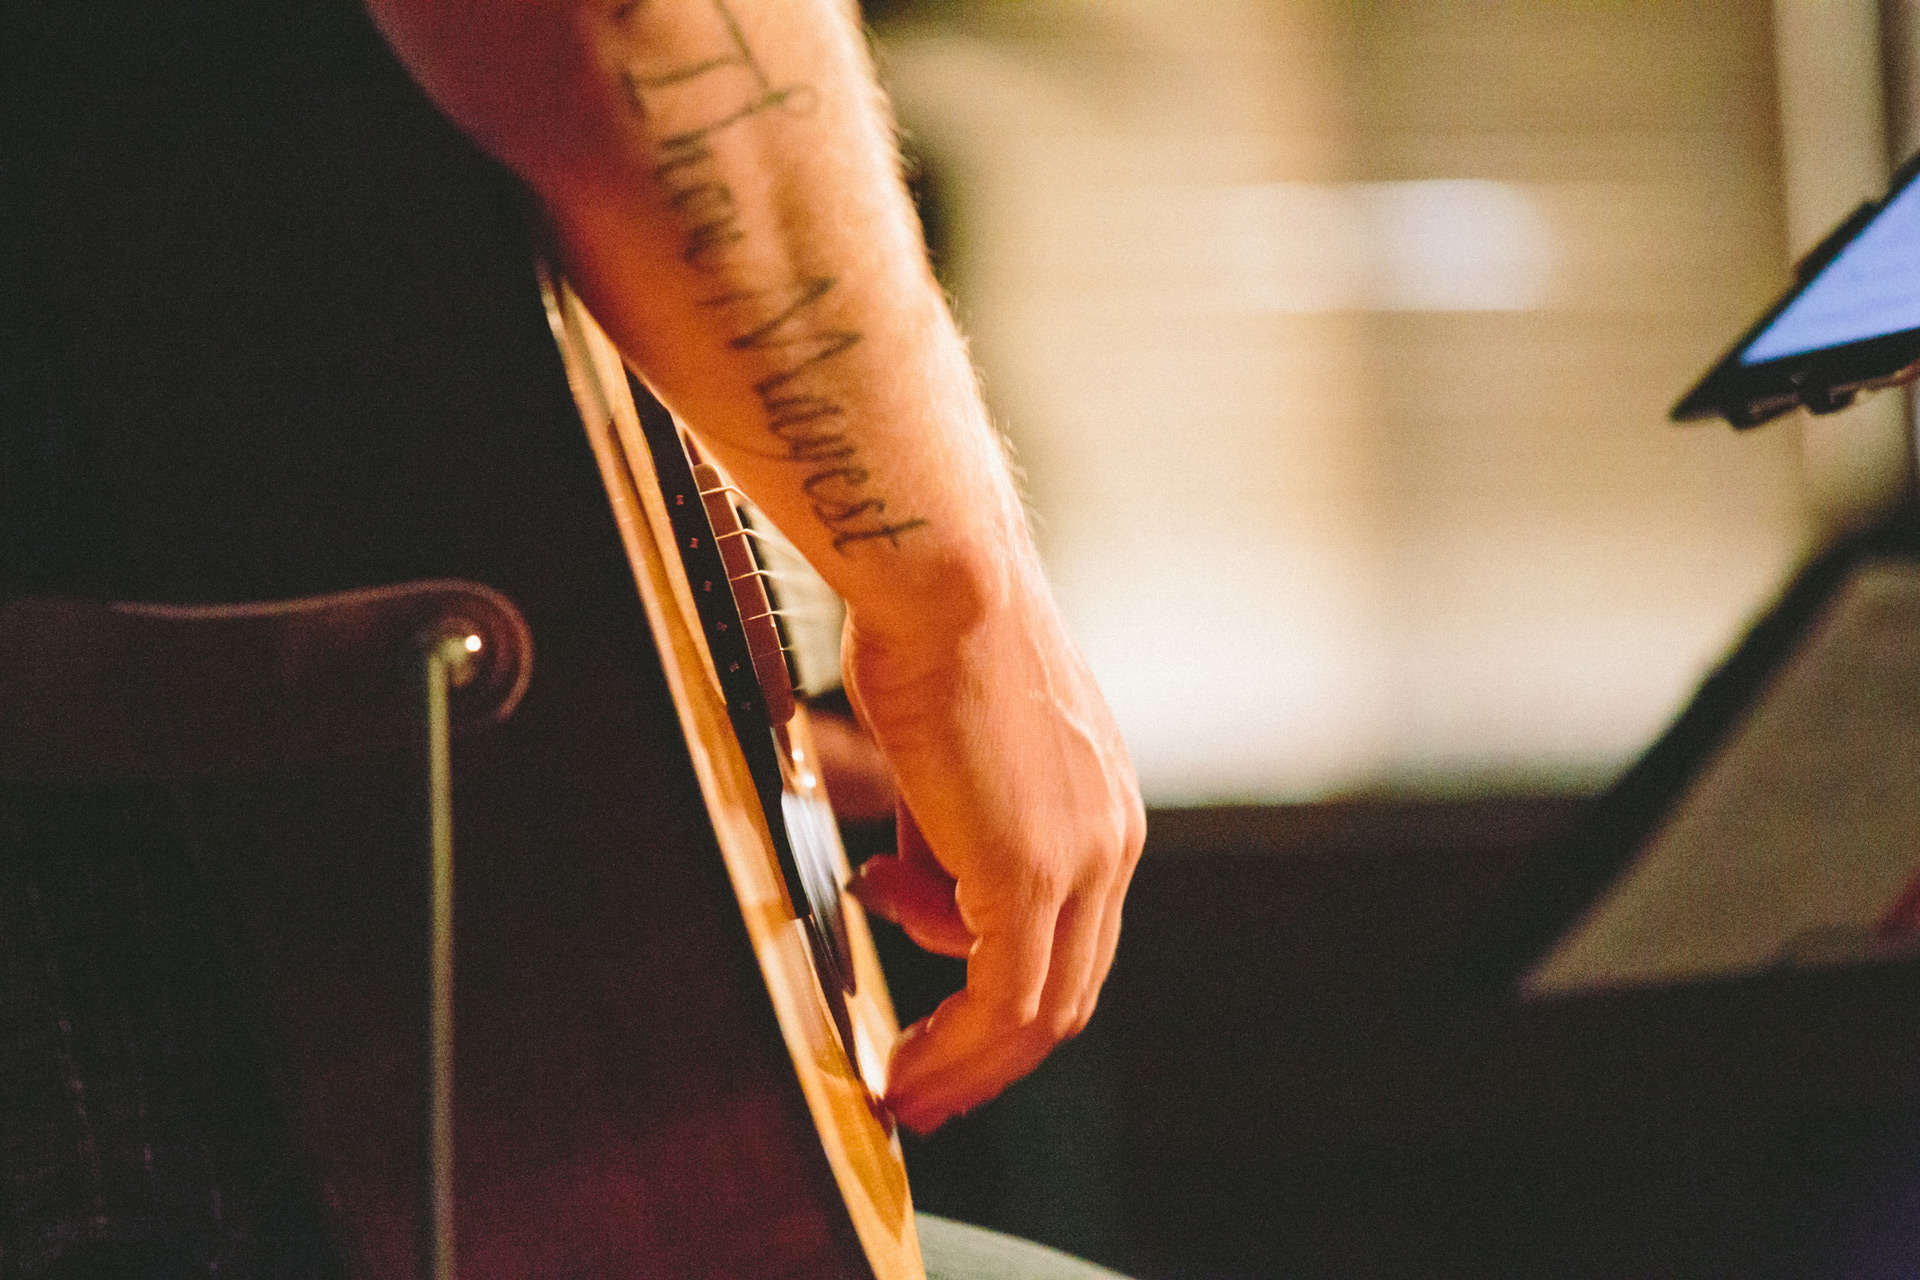 worship leader with arm tattoo playing guitar